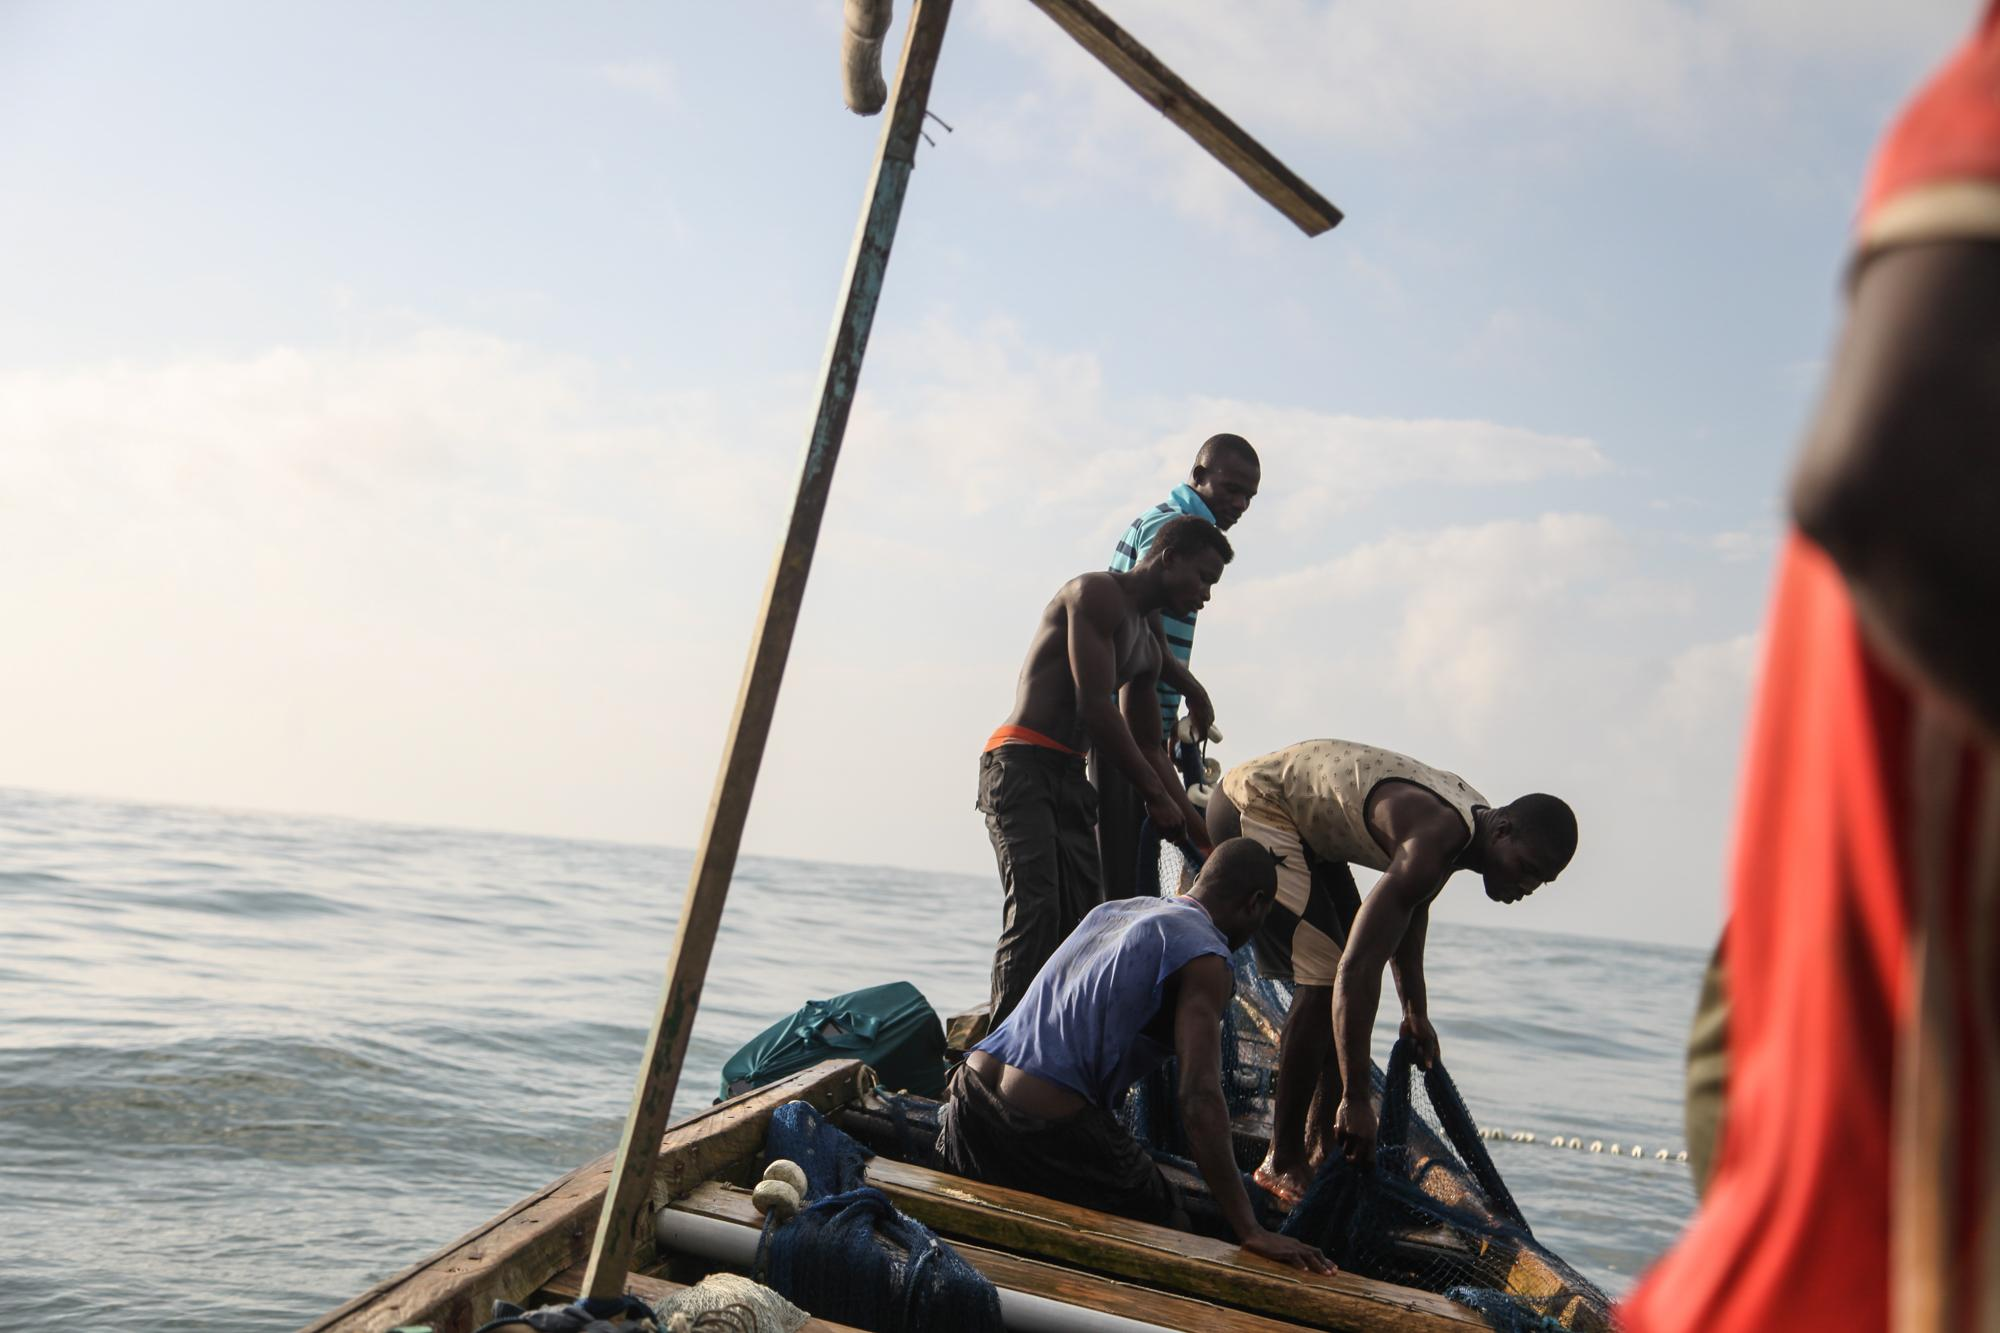 Fishermen pilling nets on the small wooden canoe in the Gulf of Guinea.